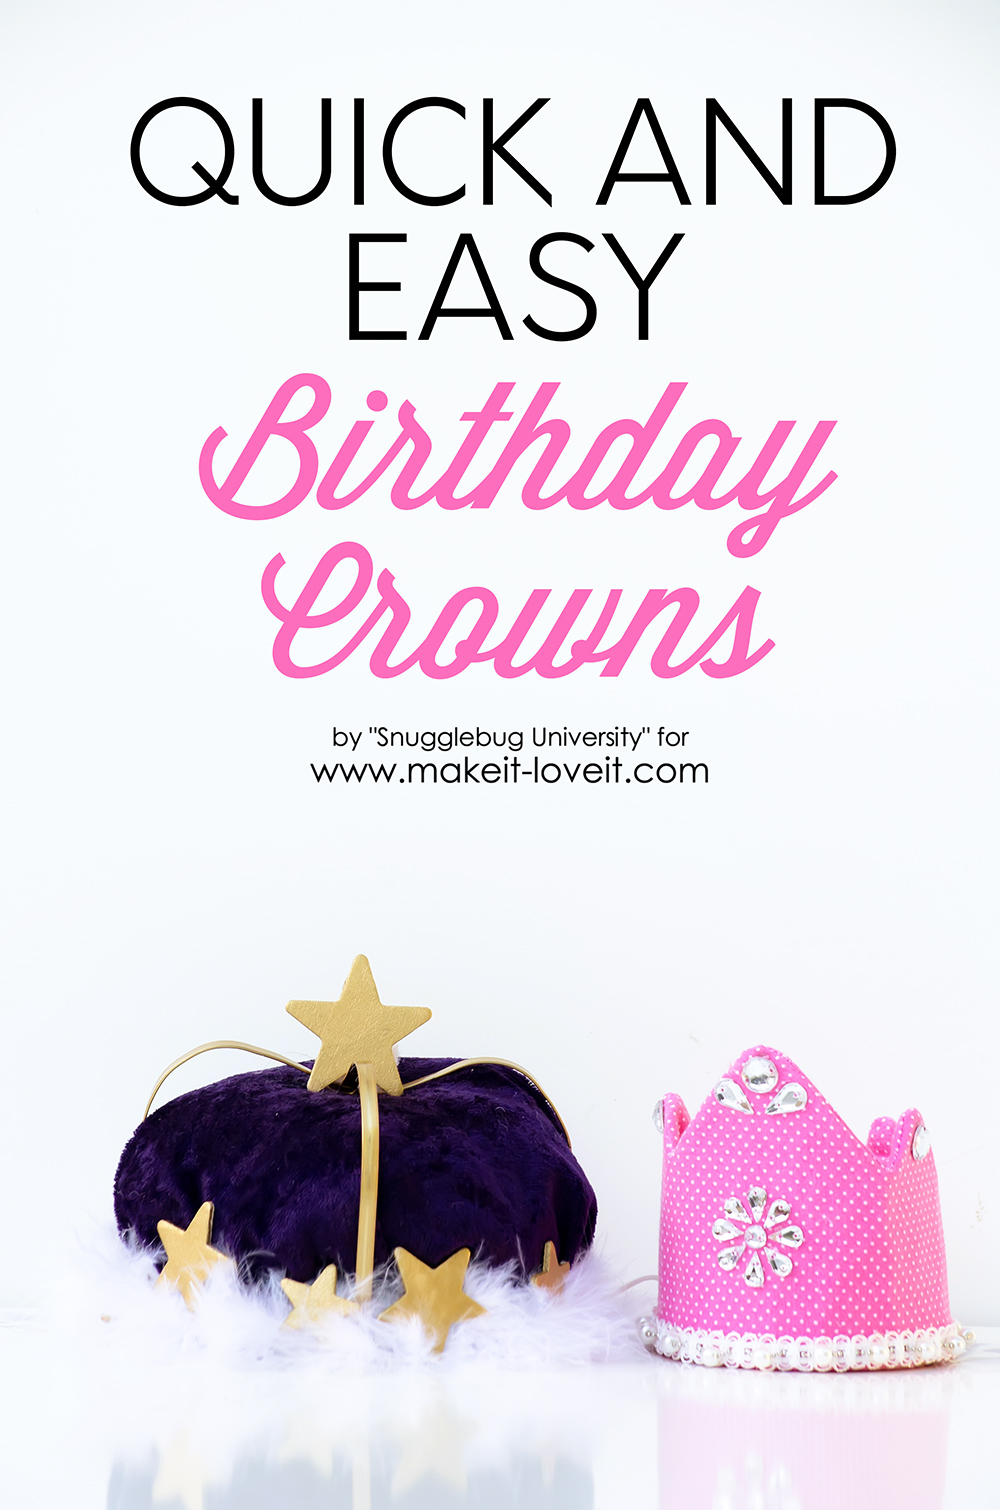 Quick and easy birthday crowns from embroidery hoops 1